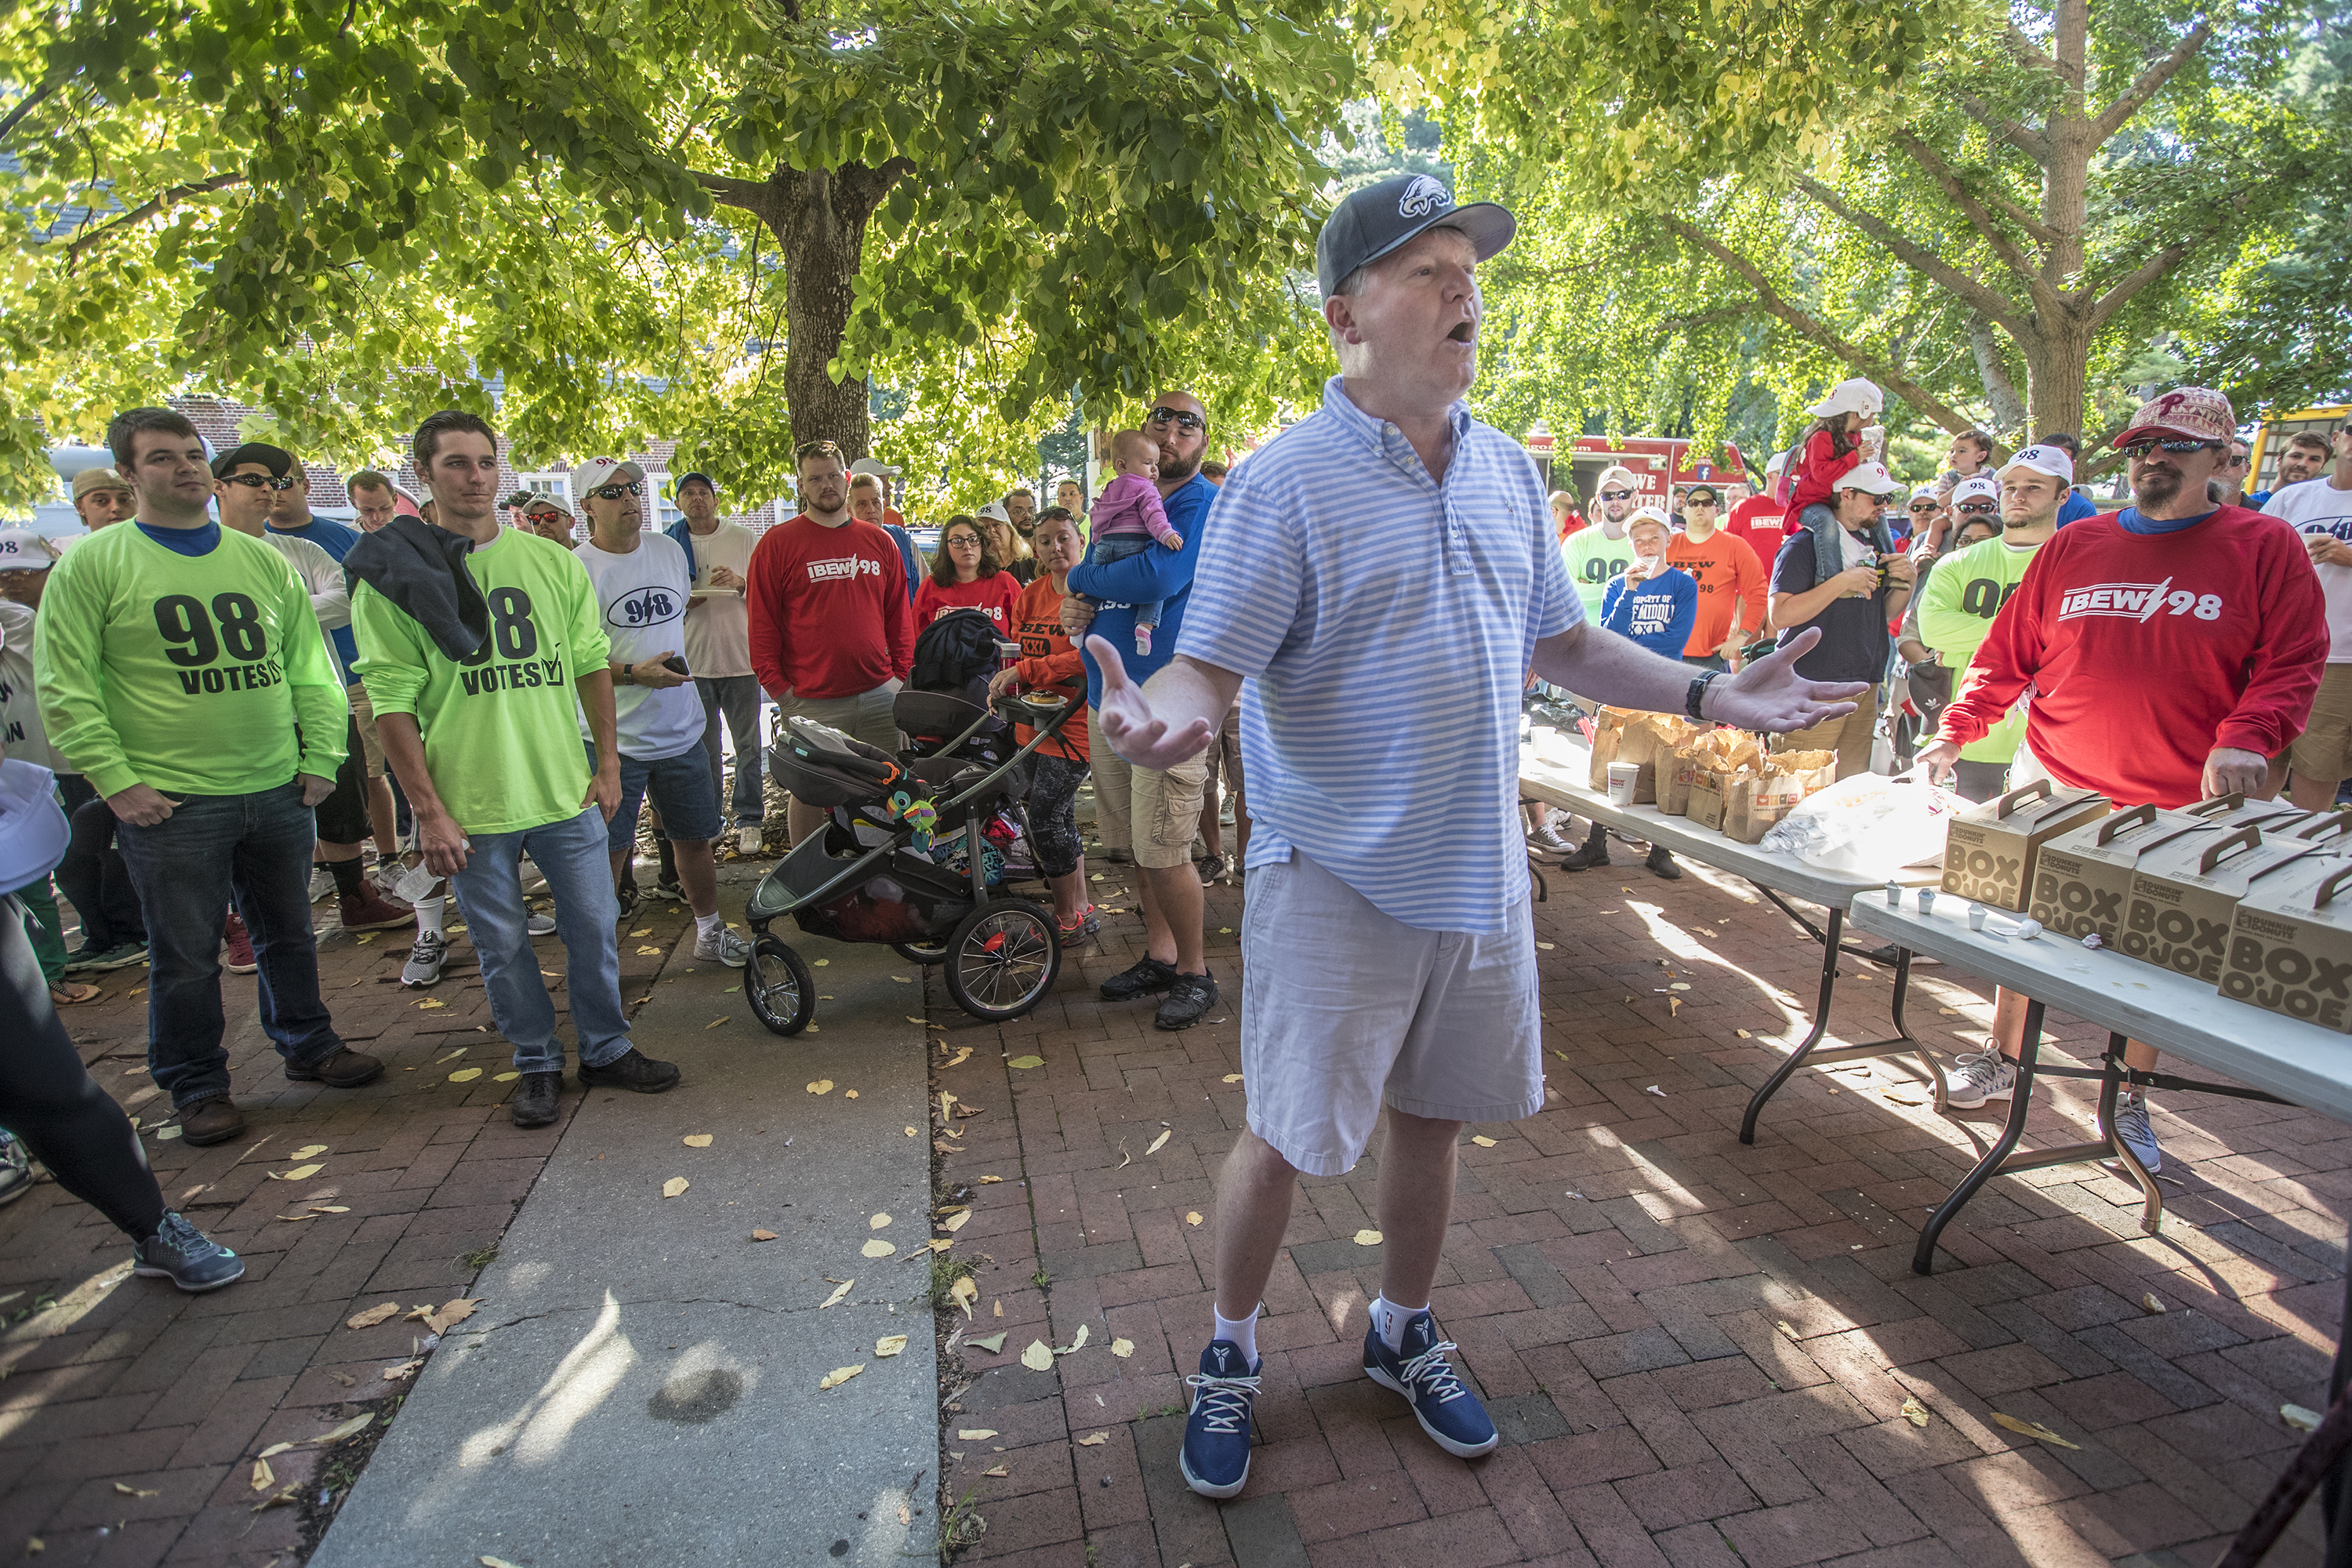 IBEW Local 98 union leader John Dougherty speaks to union members gathered to march in the Labor Day Parade about donations for Hurricane Harvey victims and the importance of unions. MICHAEL BRYANT / Staff Photographer